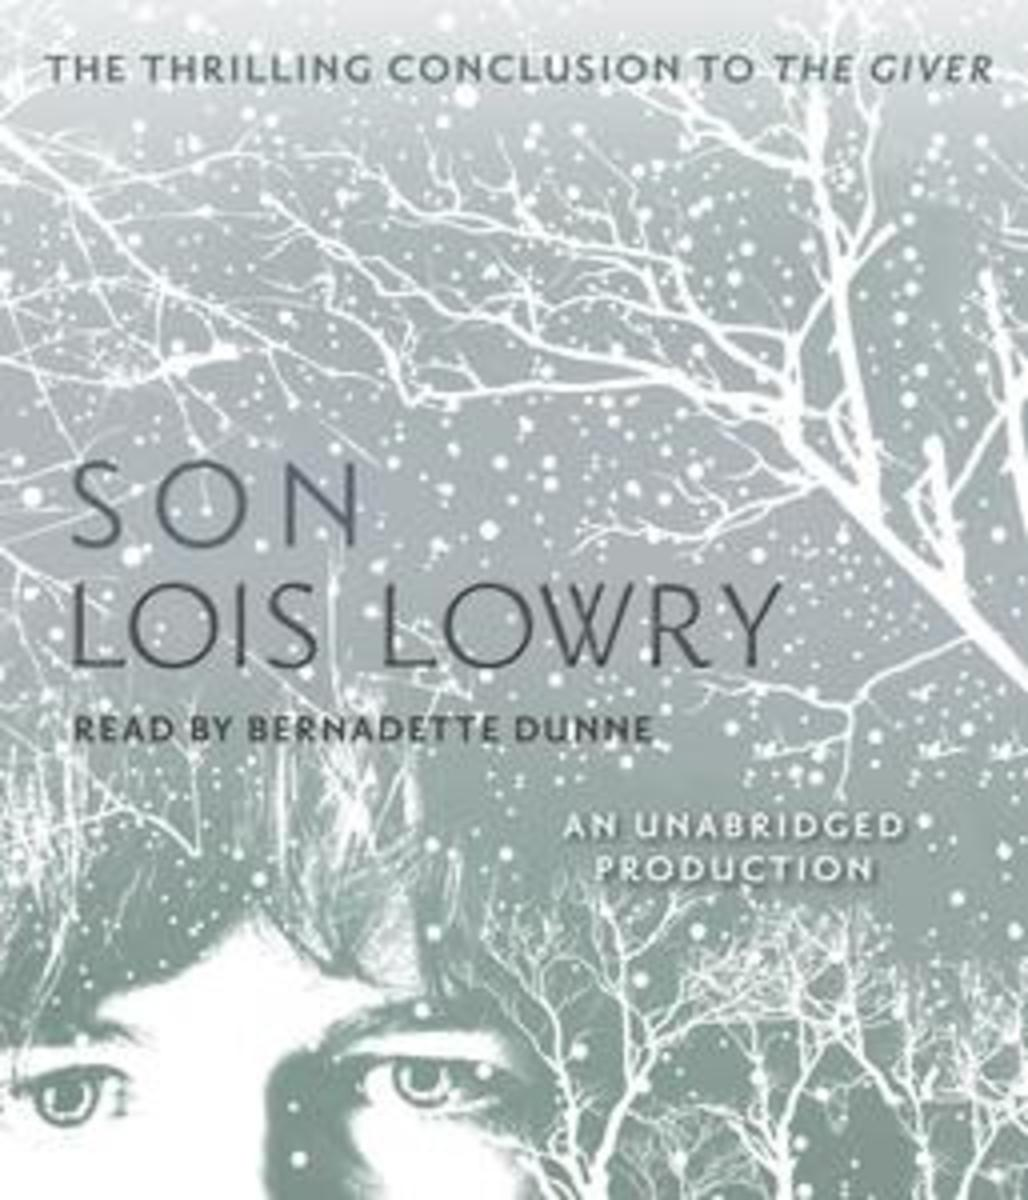 The Giver By Lois Lowry Lesson Plan Ideas